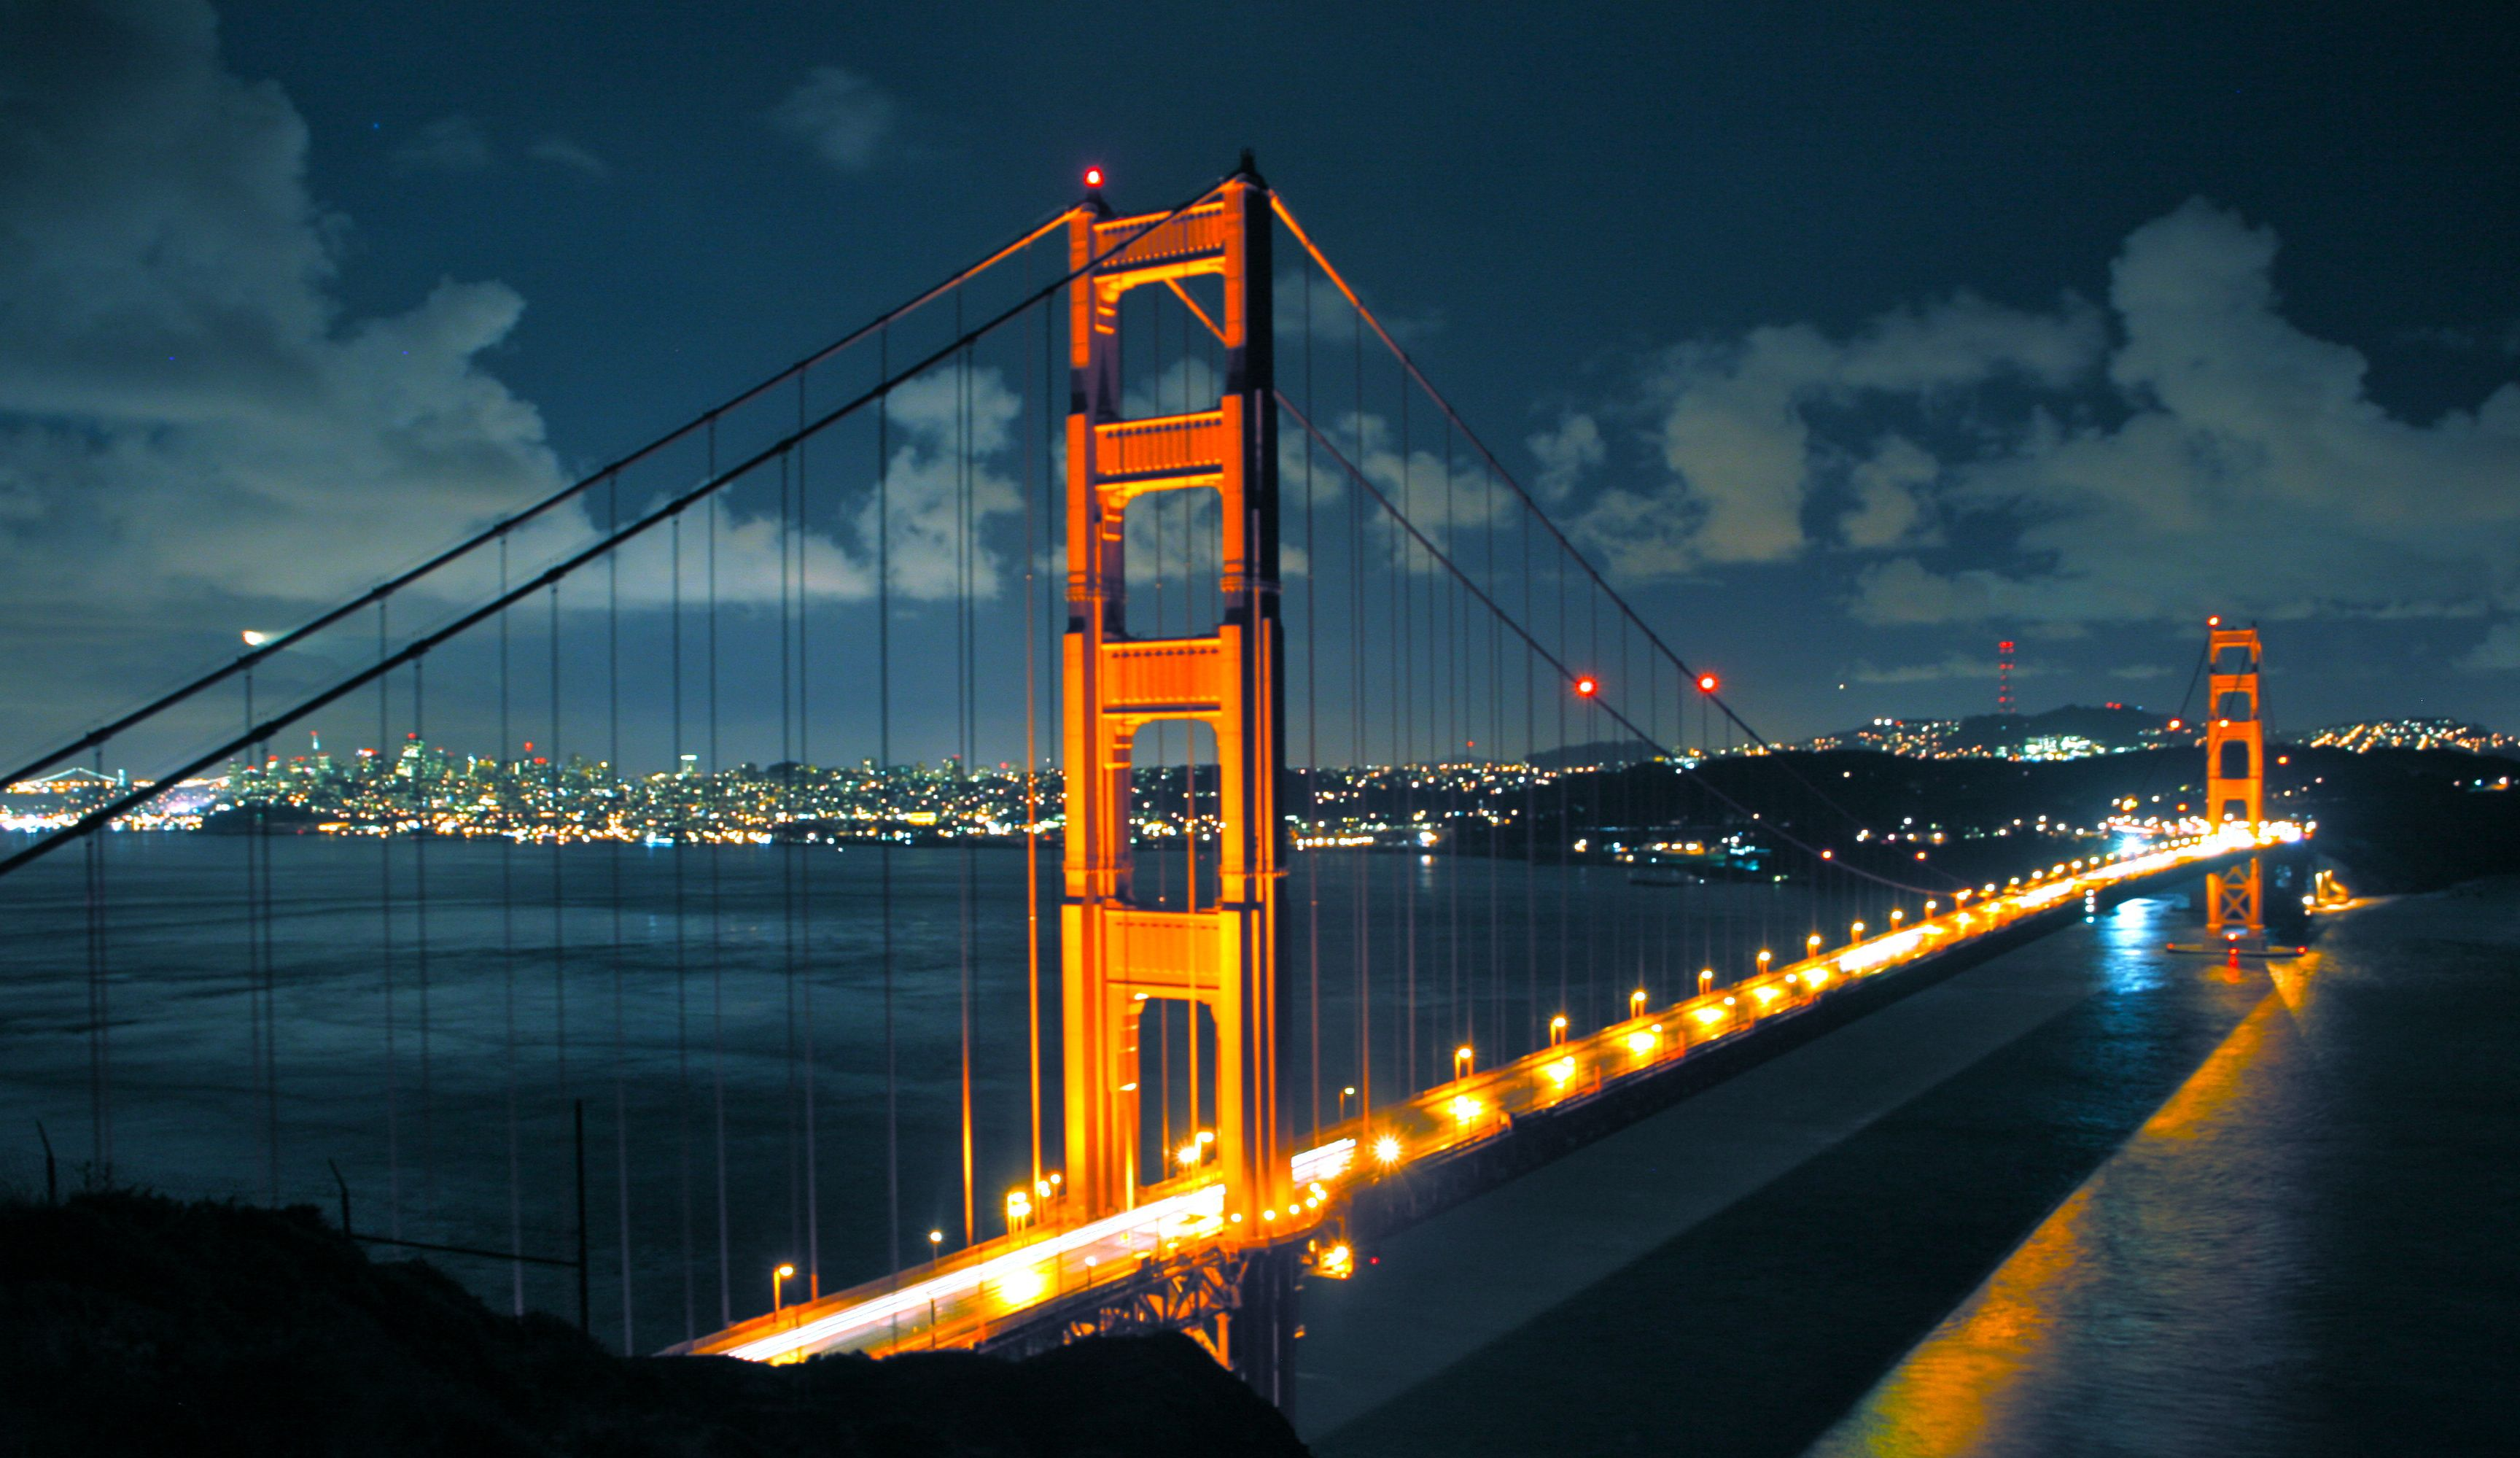 Best 10 Hd Wallpapers Bridge Wallpaper Golden Gate Bridge Wallpaper Wallpaper Pc